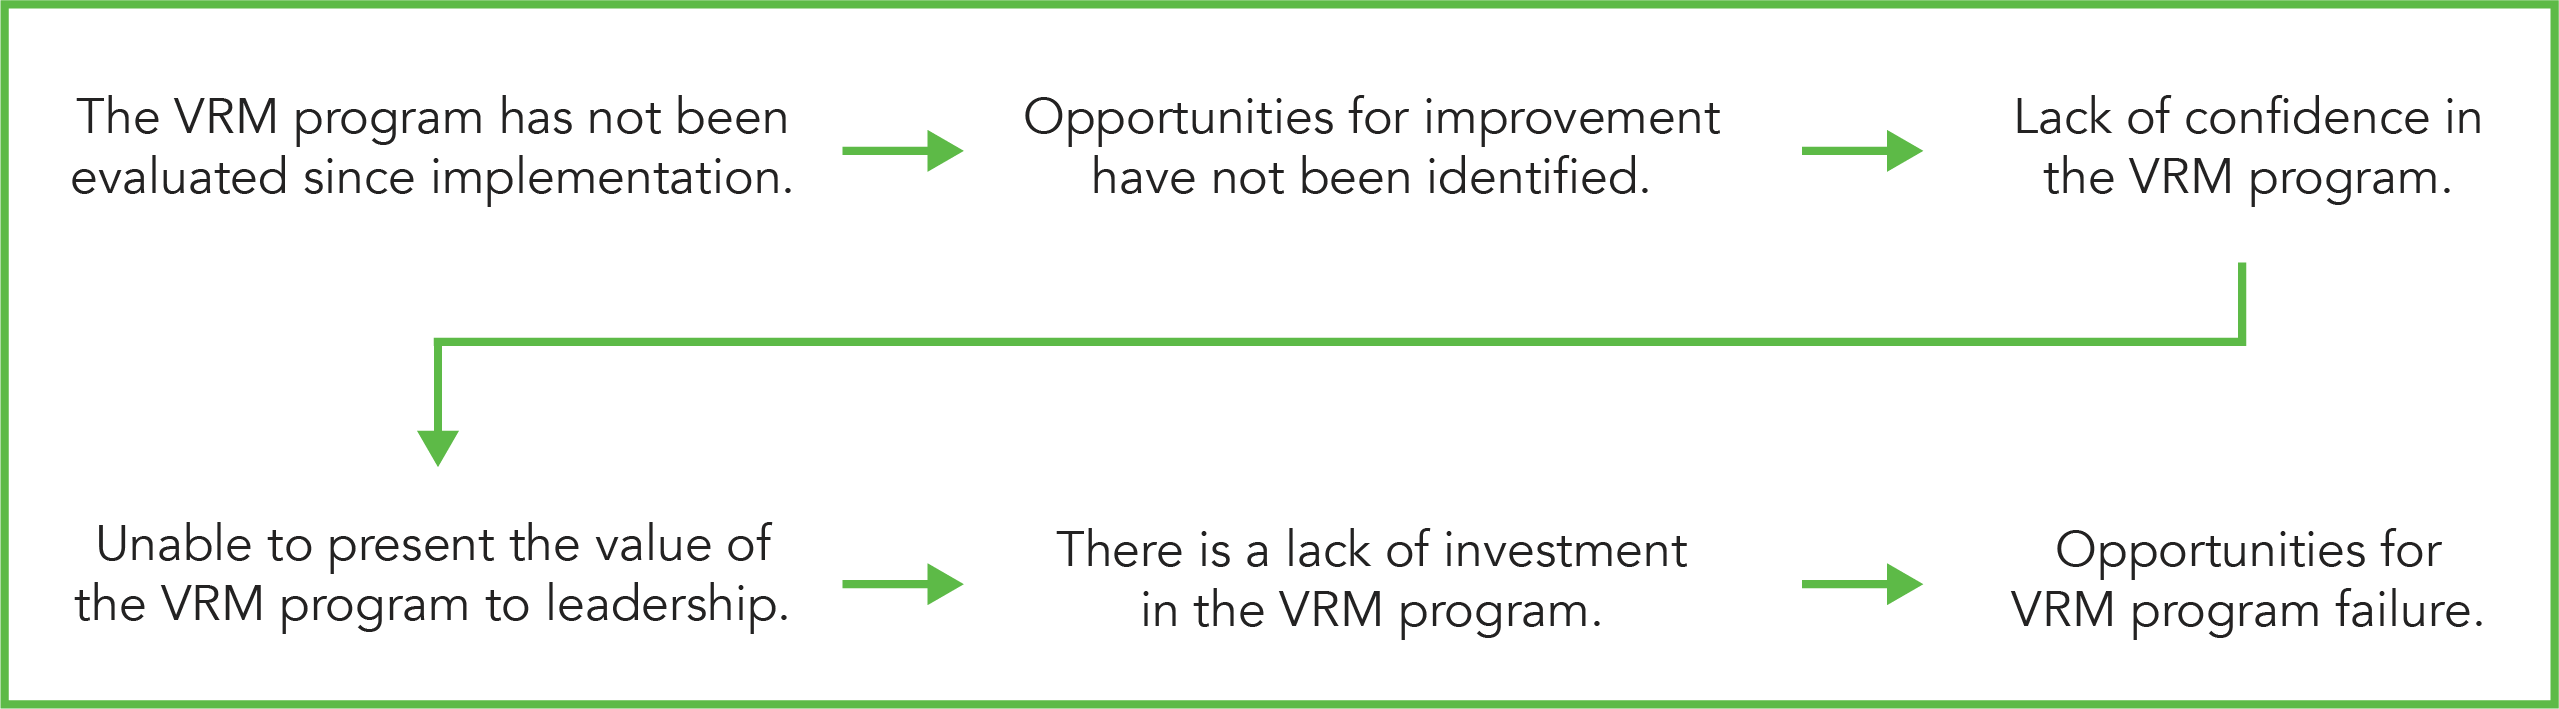 VRM evaluation